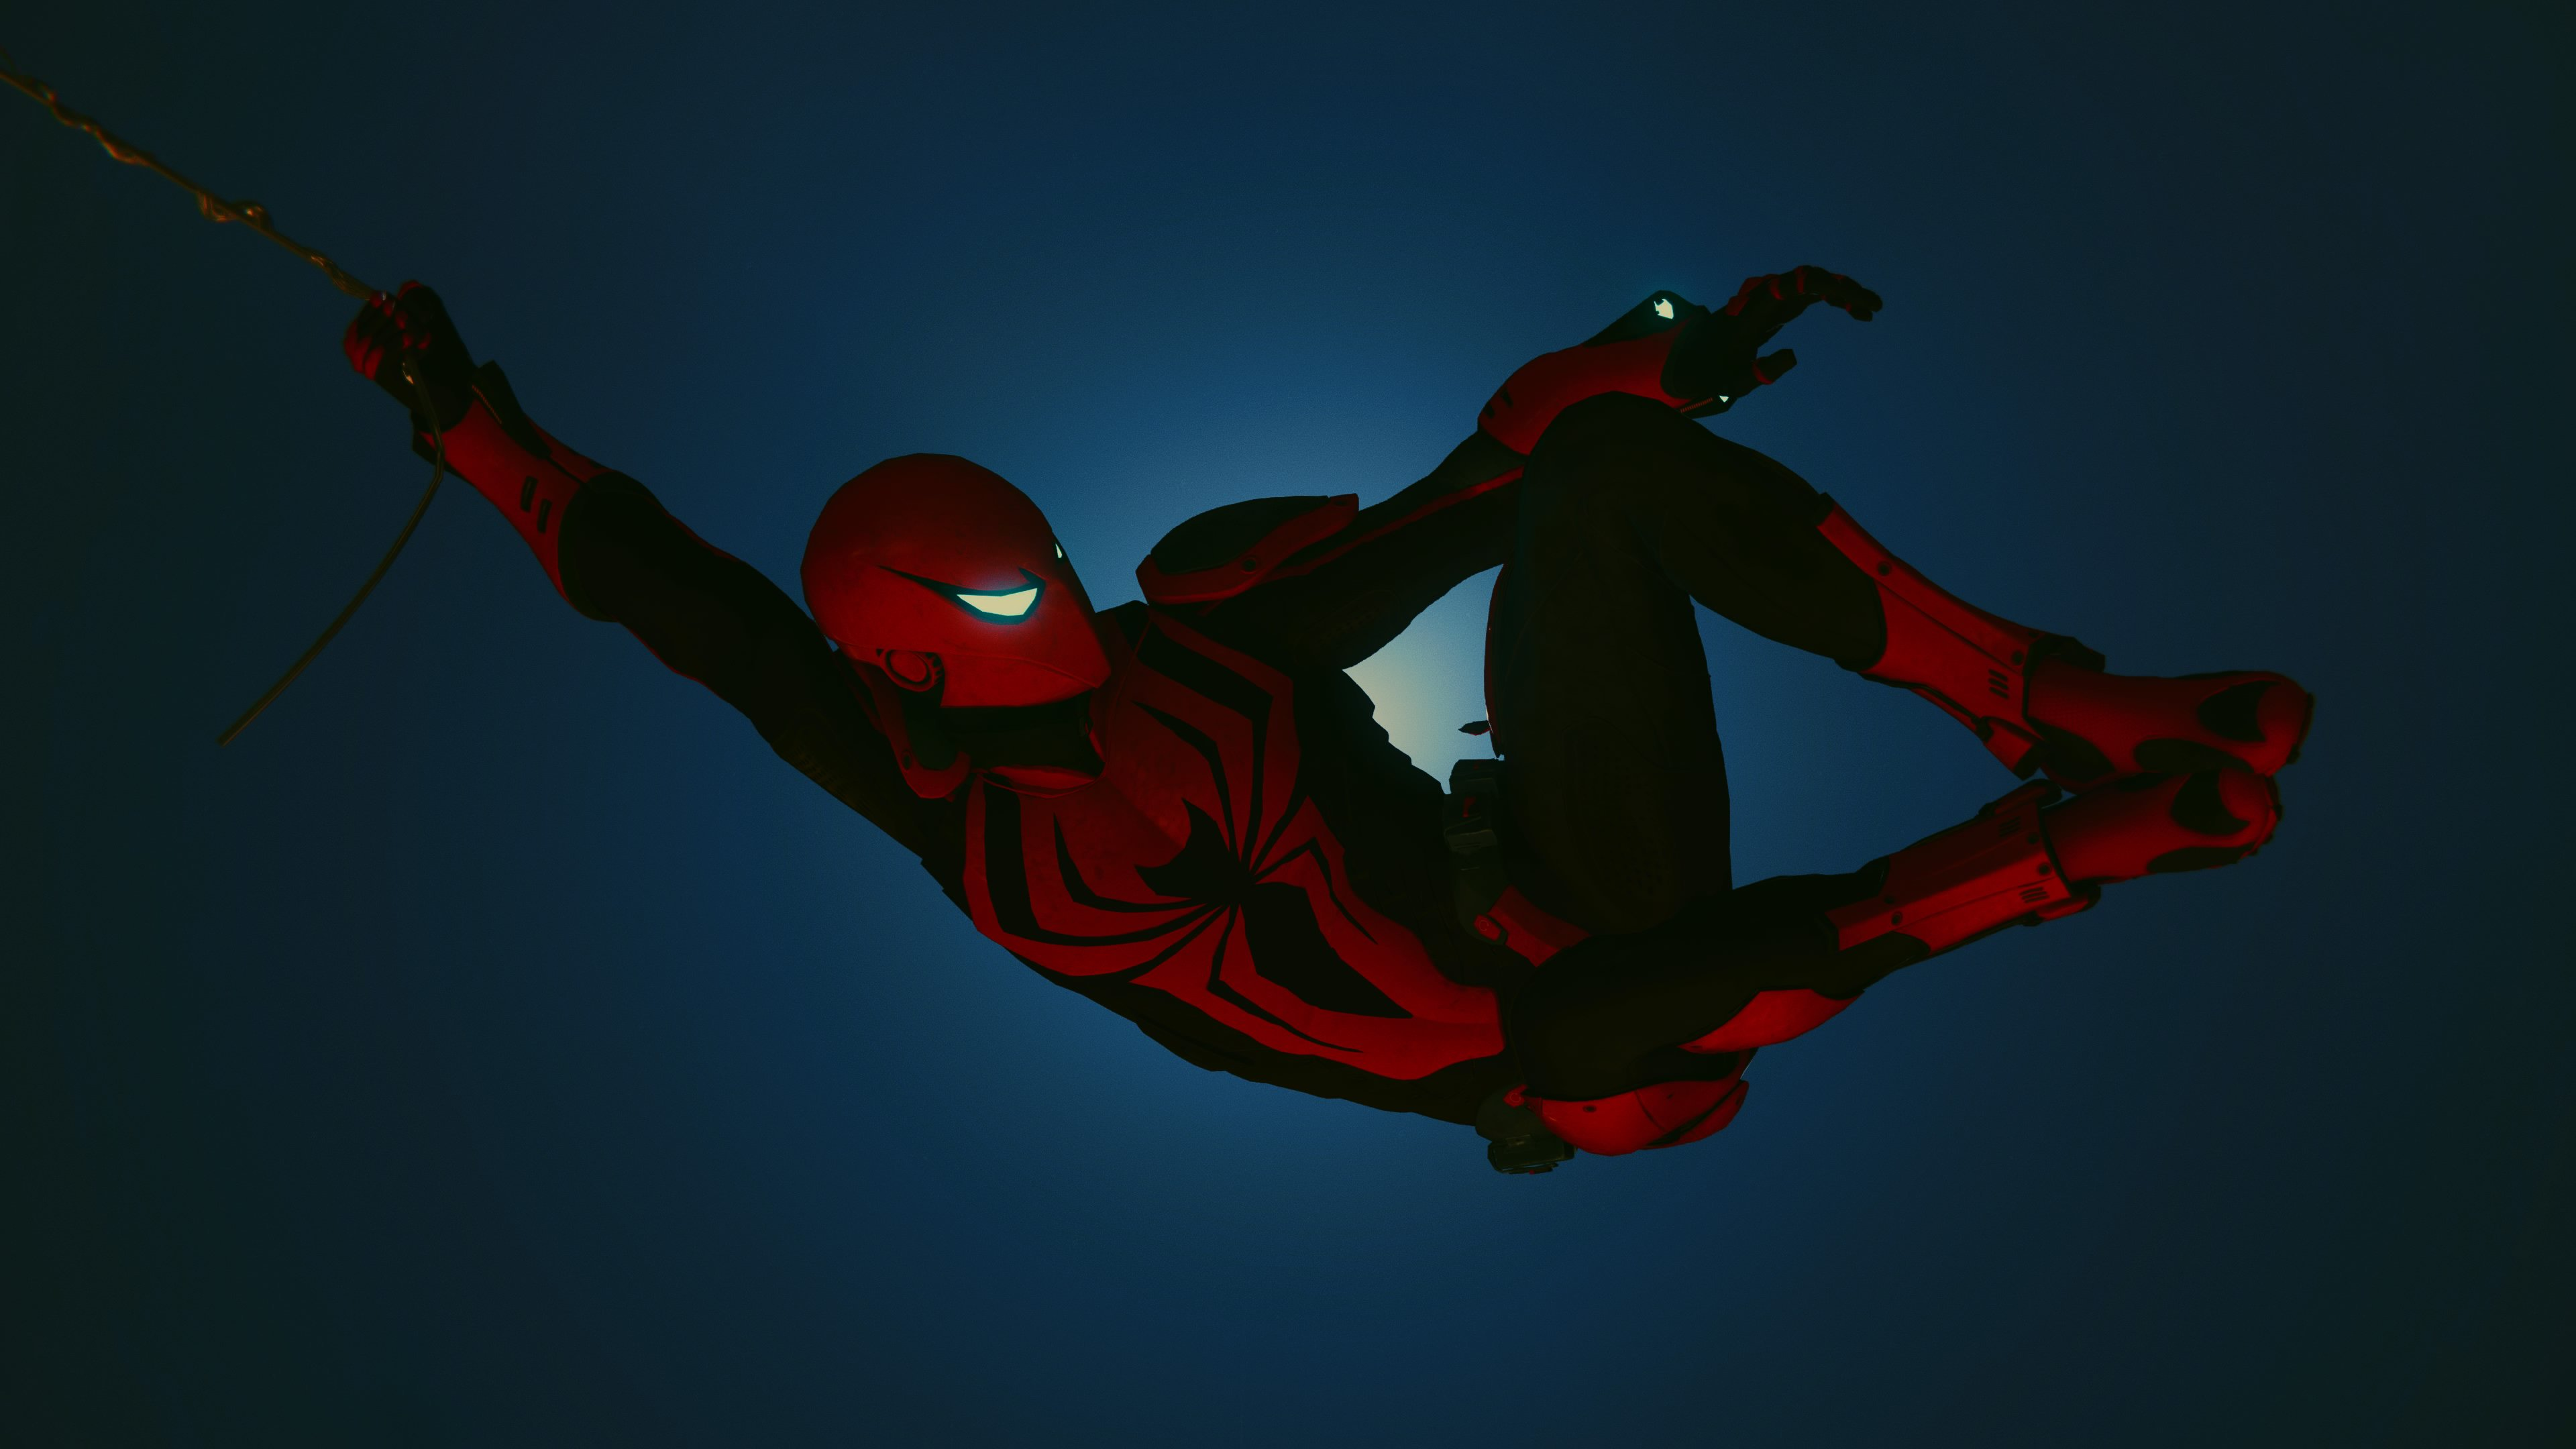 Wallpaper 4k Red Spider Suit 4k Wallpapers Hd Wallpapers Reddit Wallpapers Spiderman Wallpapers Superheroes Wallpapers